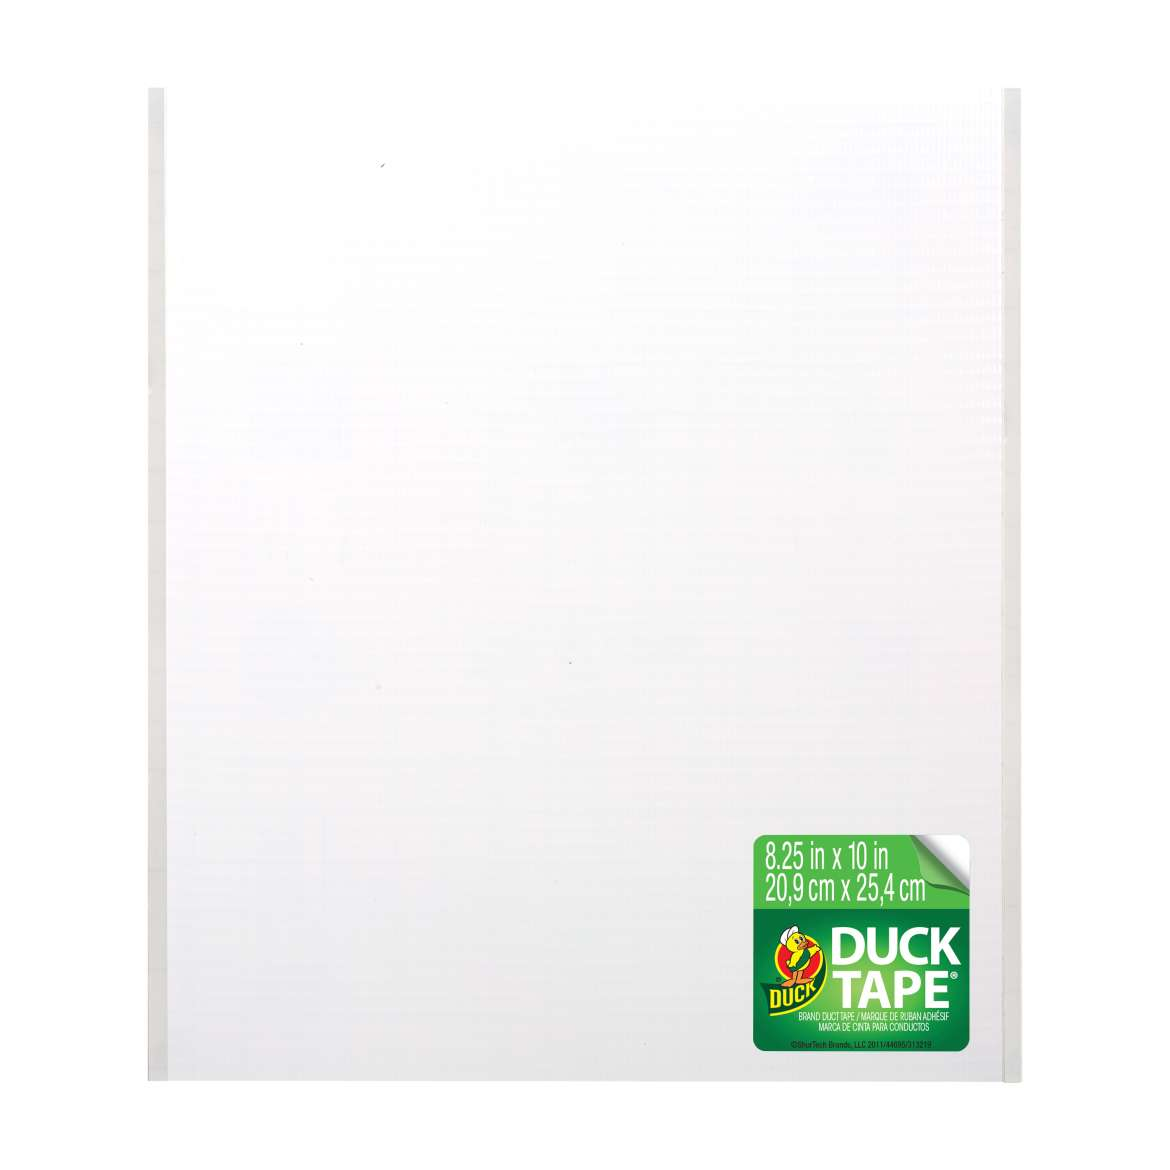 Color Duck Tape® Sheets - White, 6 pk, 8.25 in. x 10 in. Image